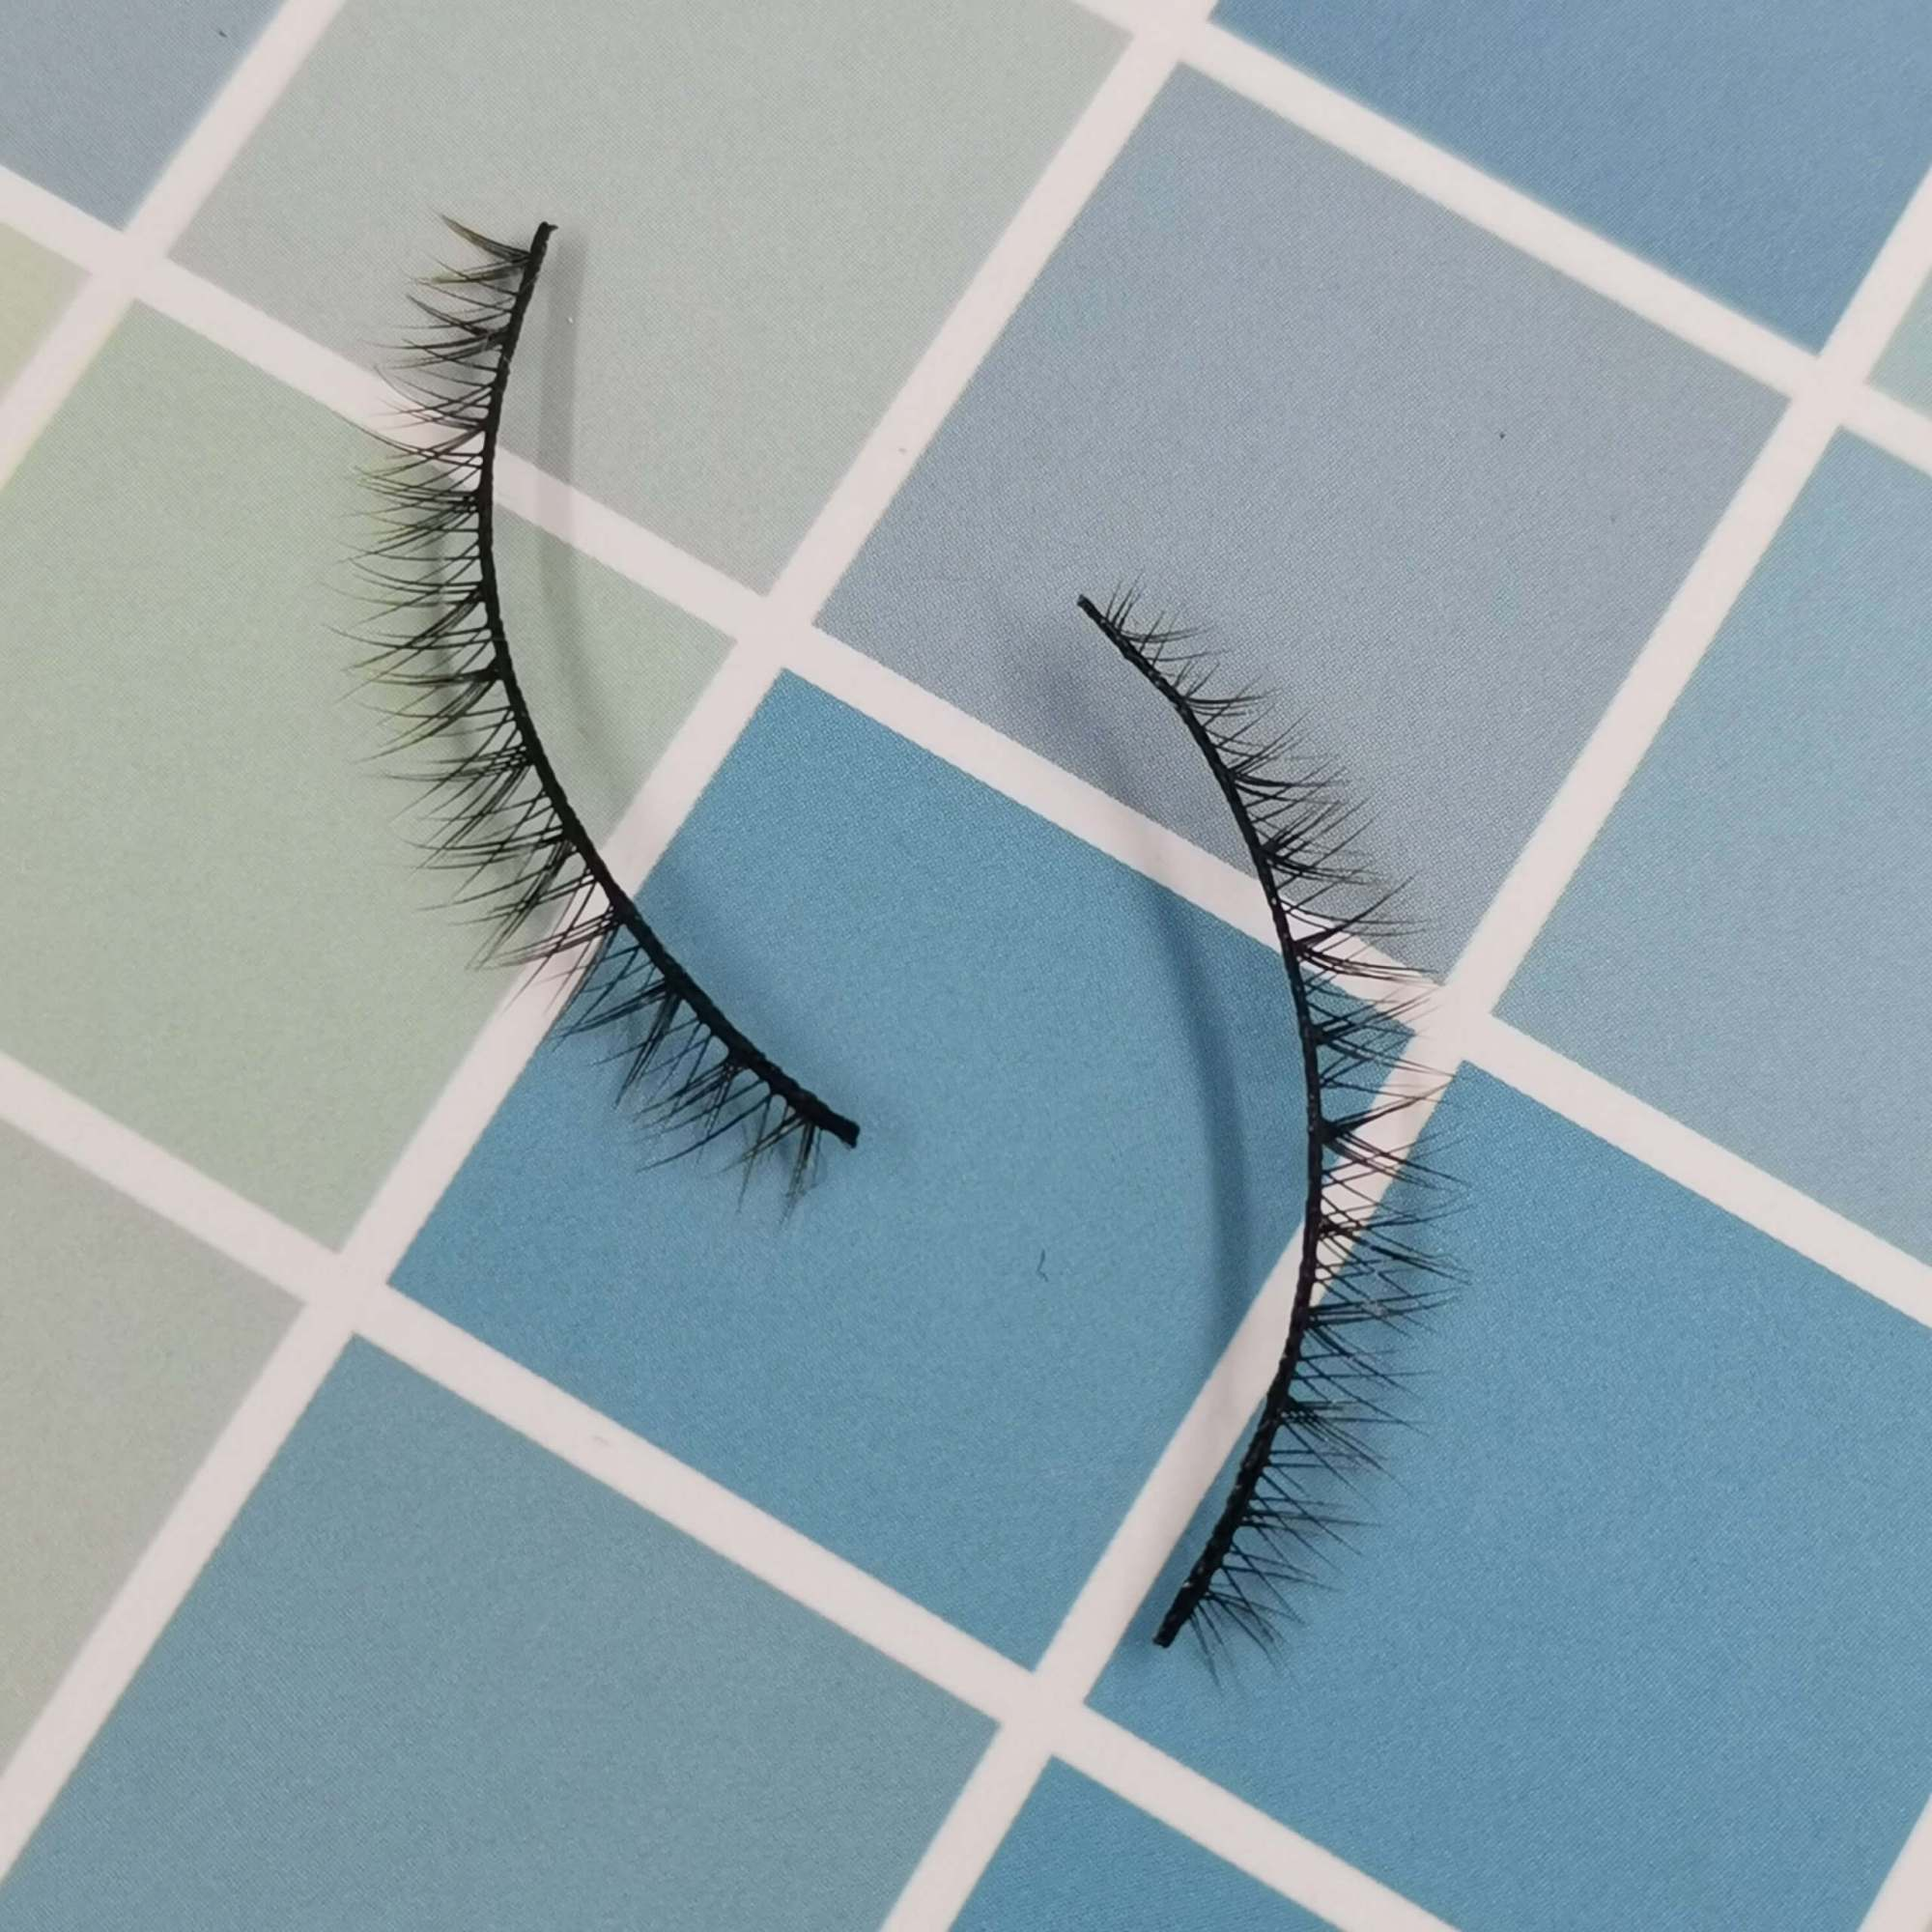 A pair of bottom eyelashes for your eye shape and its model is x003. Trust me, ProluxuryLashes brand is the best eyelash supplier